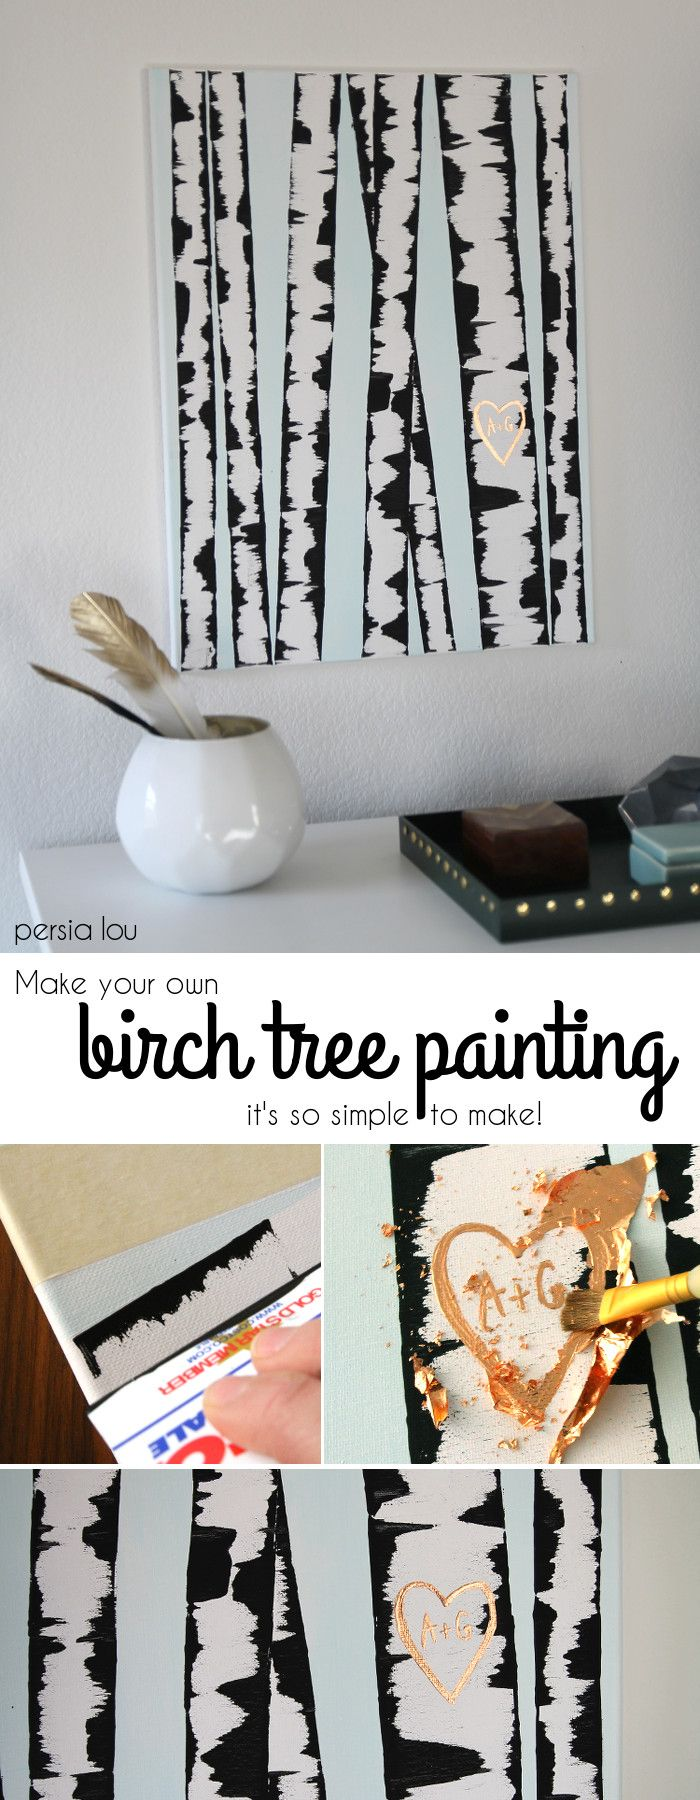 womens nike free 5 0 running shoes DIY Birch Tree Painting   Make your own wall art with this SUPER easy step by step tutorial